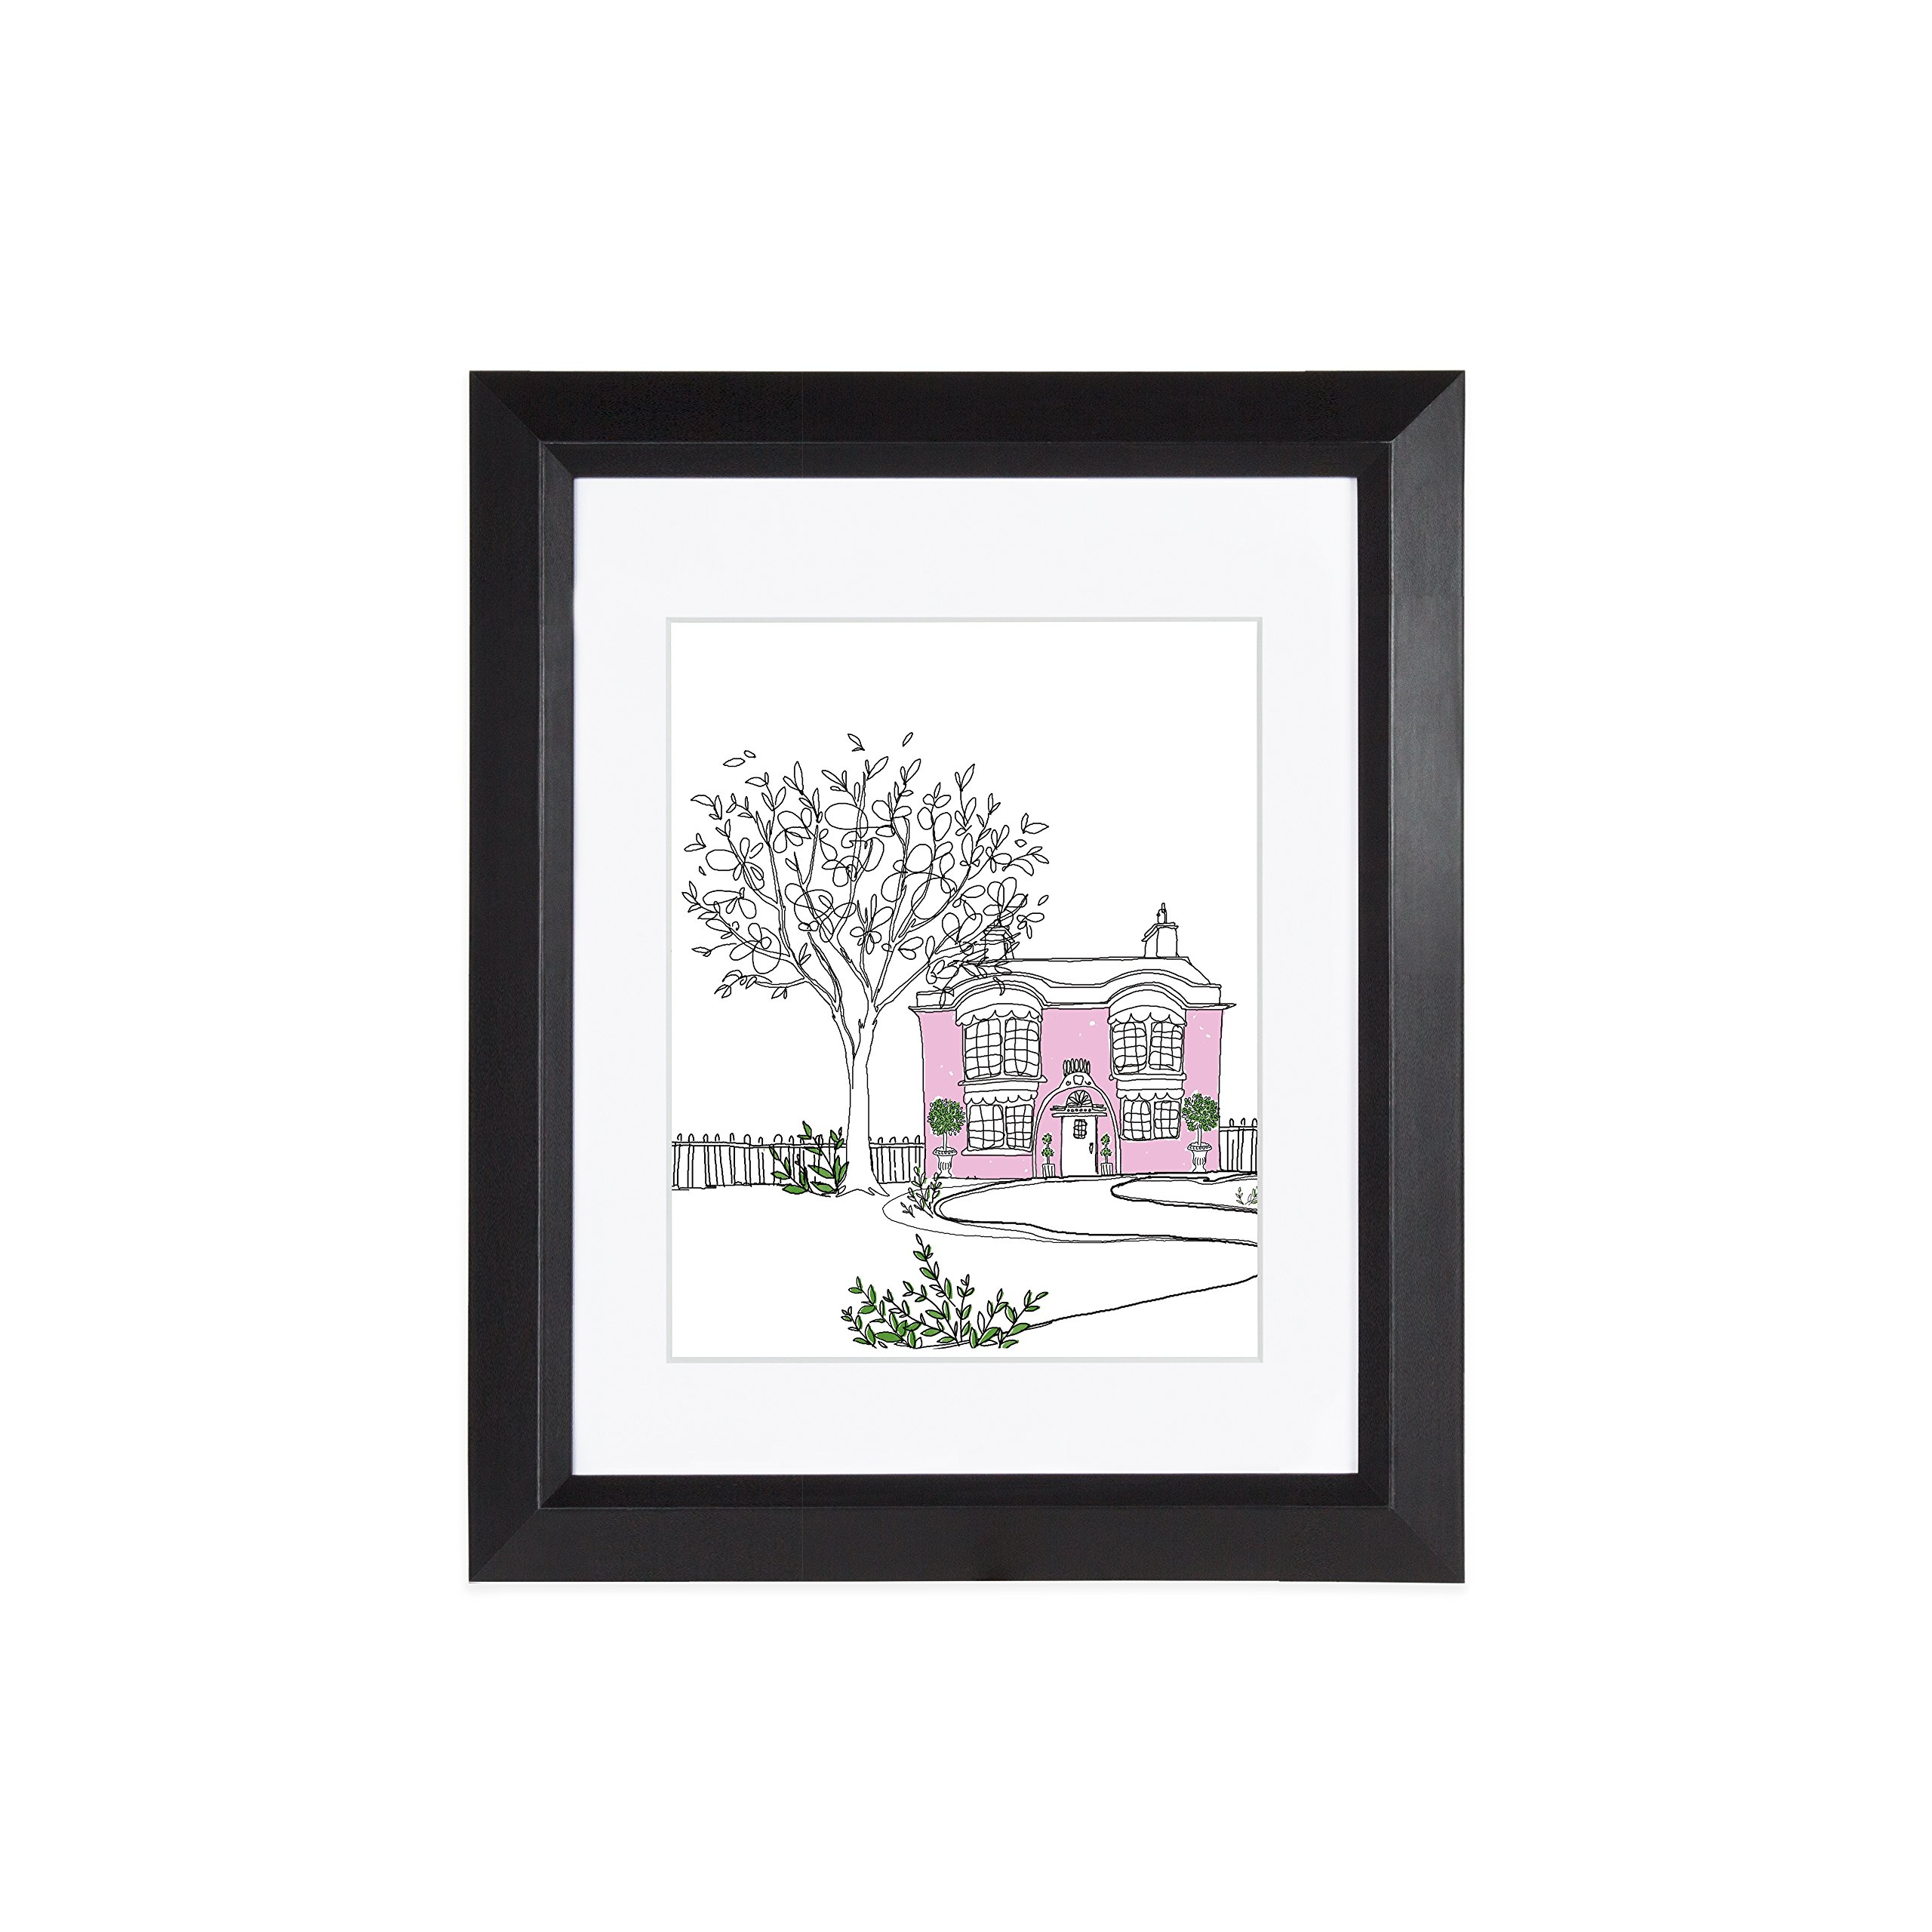 EDGEWOOD Lakewood 11x14 Black photo frame with mat for 8x10 picture or 11x14 photo without mat